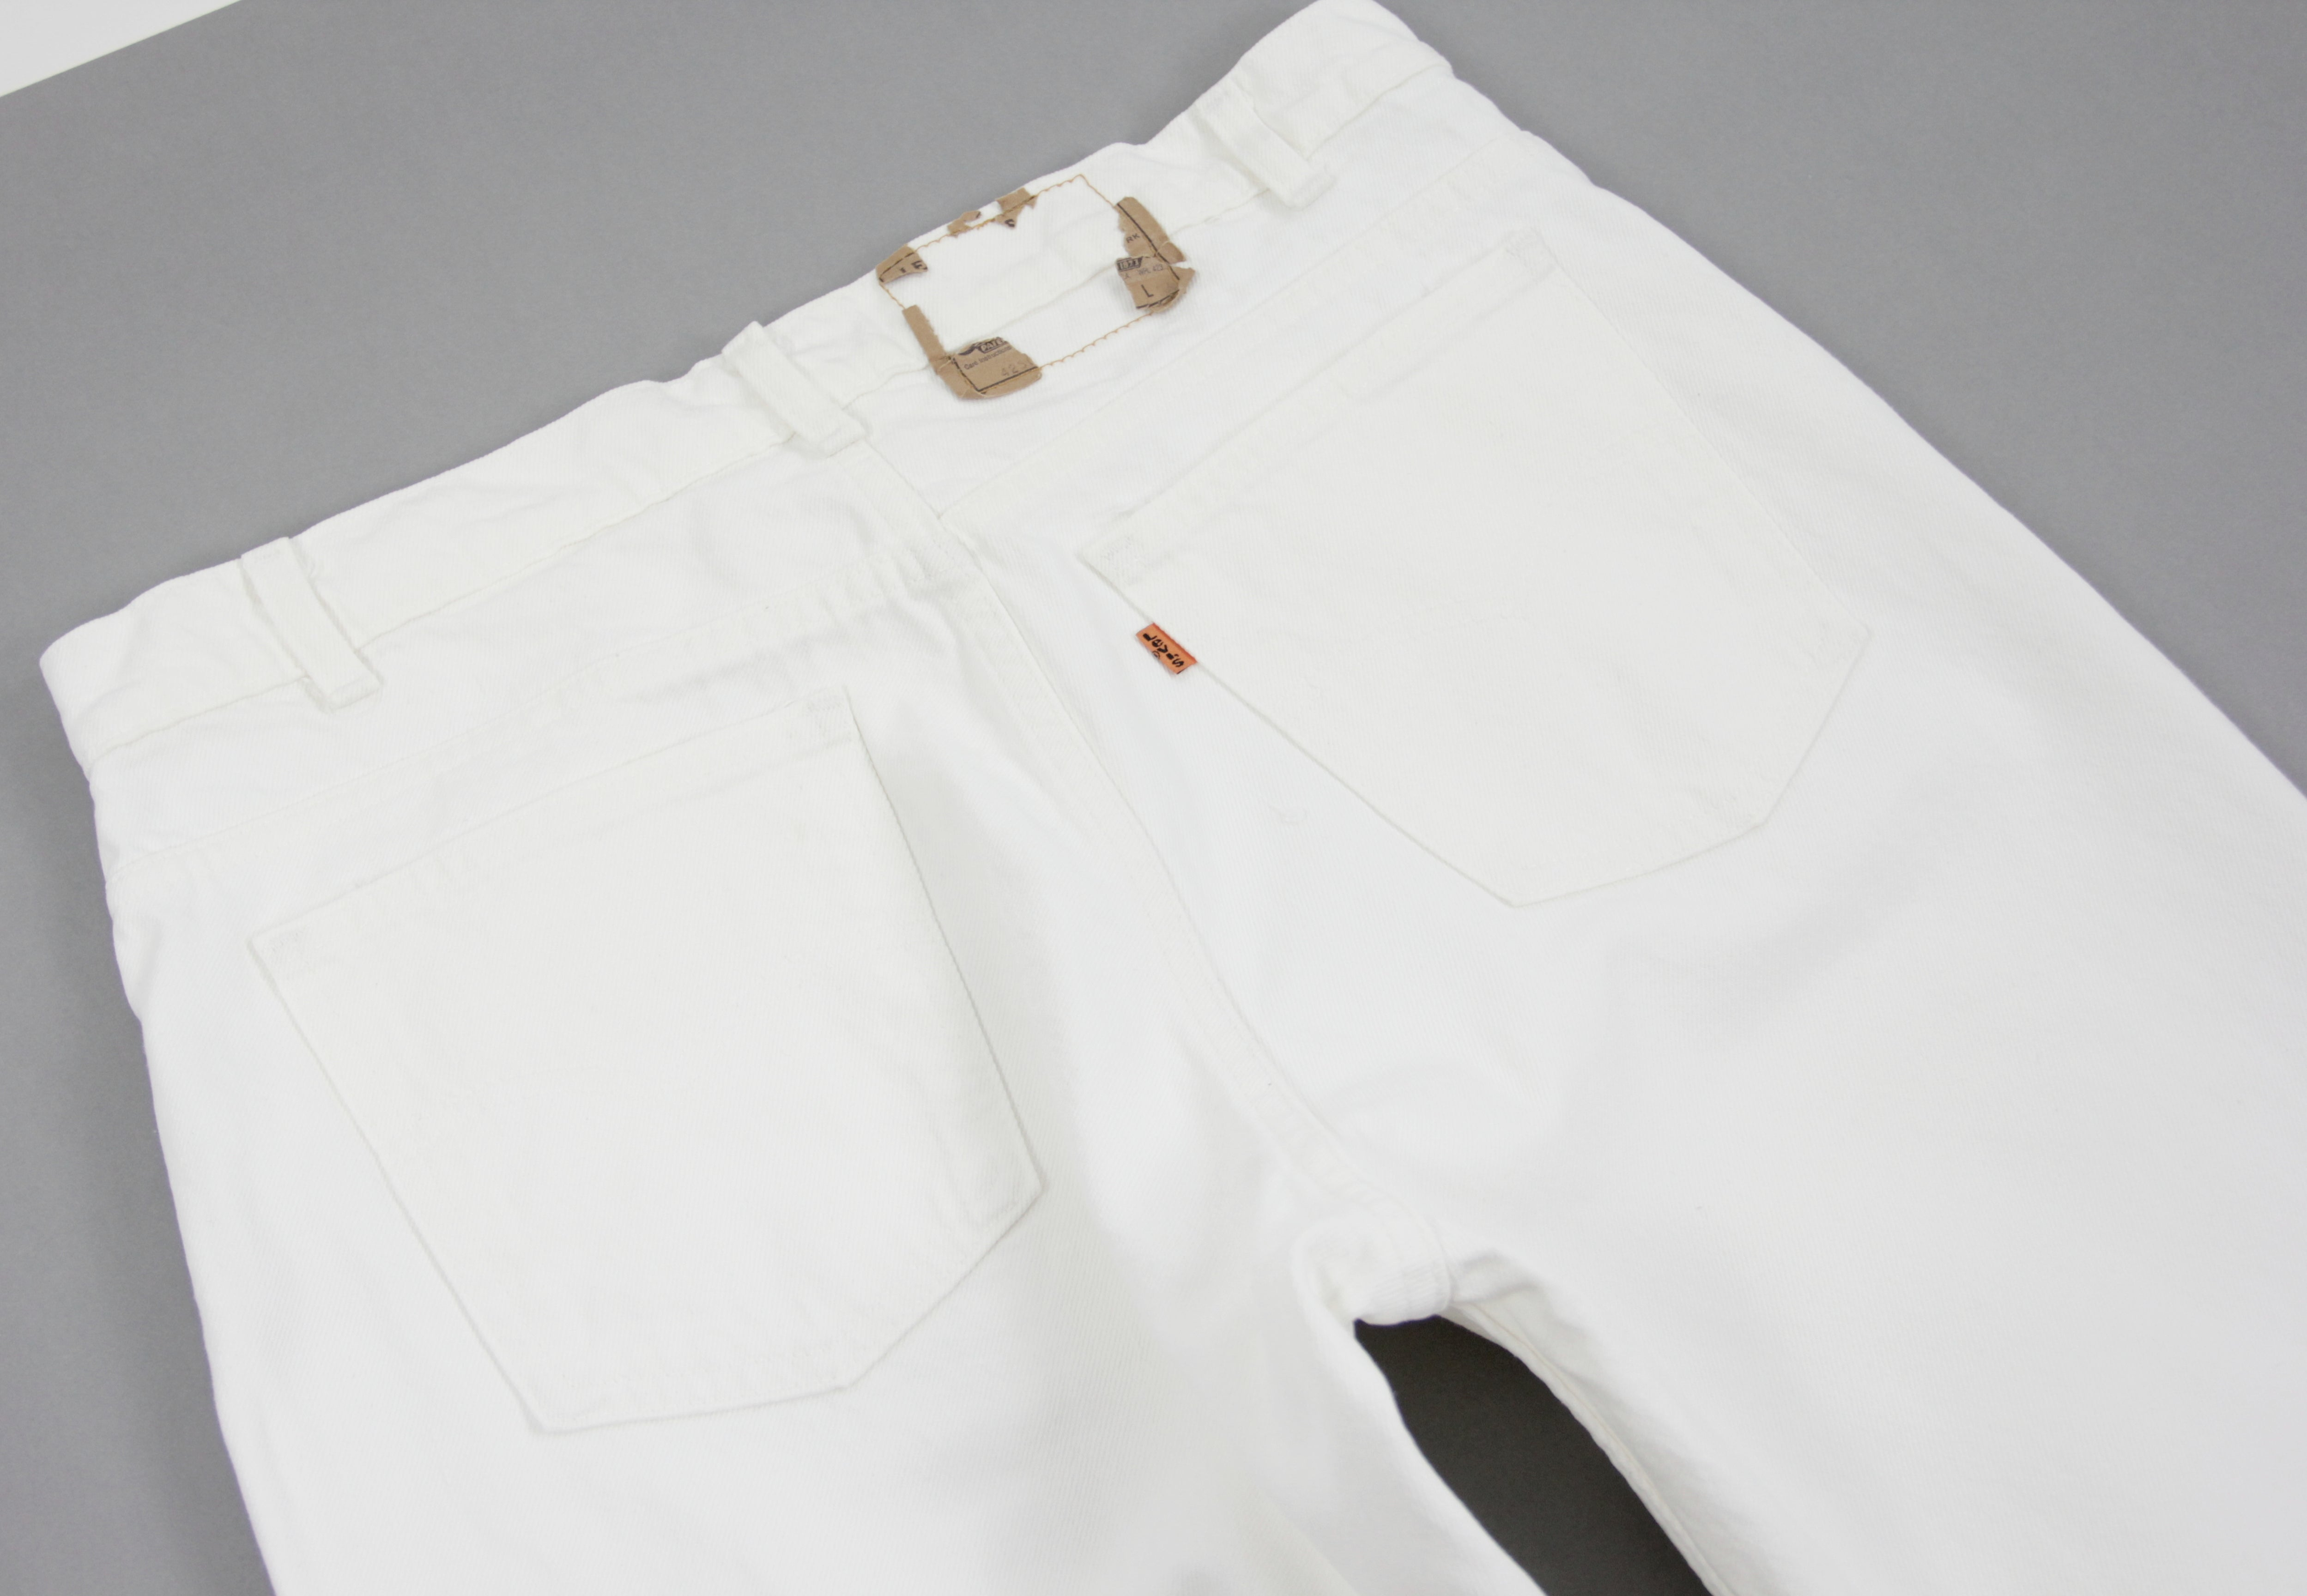 Levi's Men's Vintage Orange Tab White Jeans W34/L32